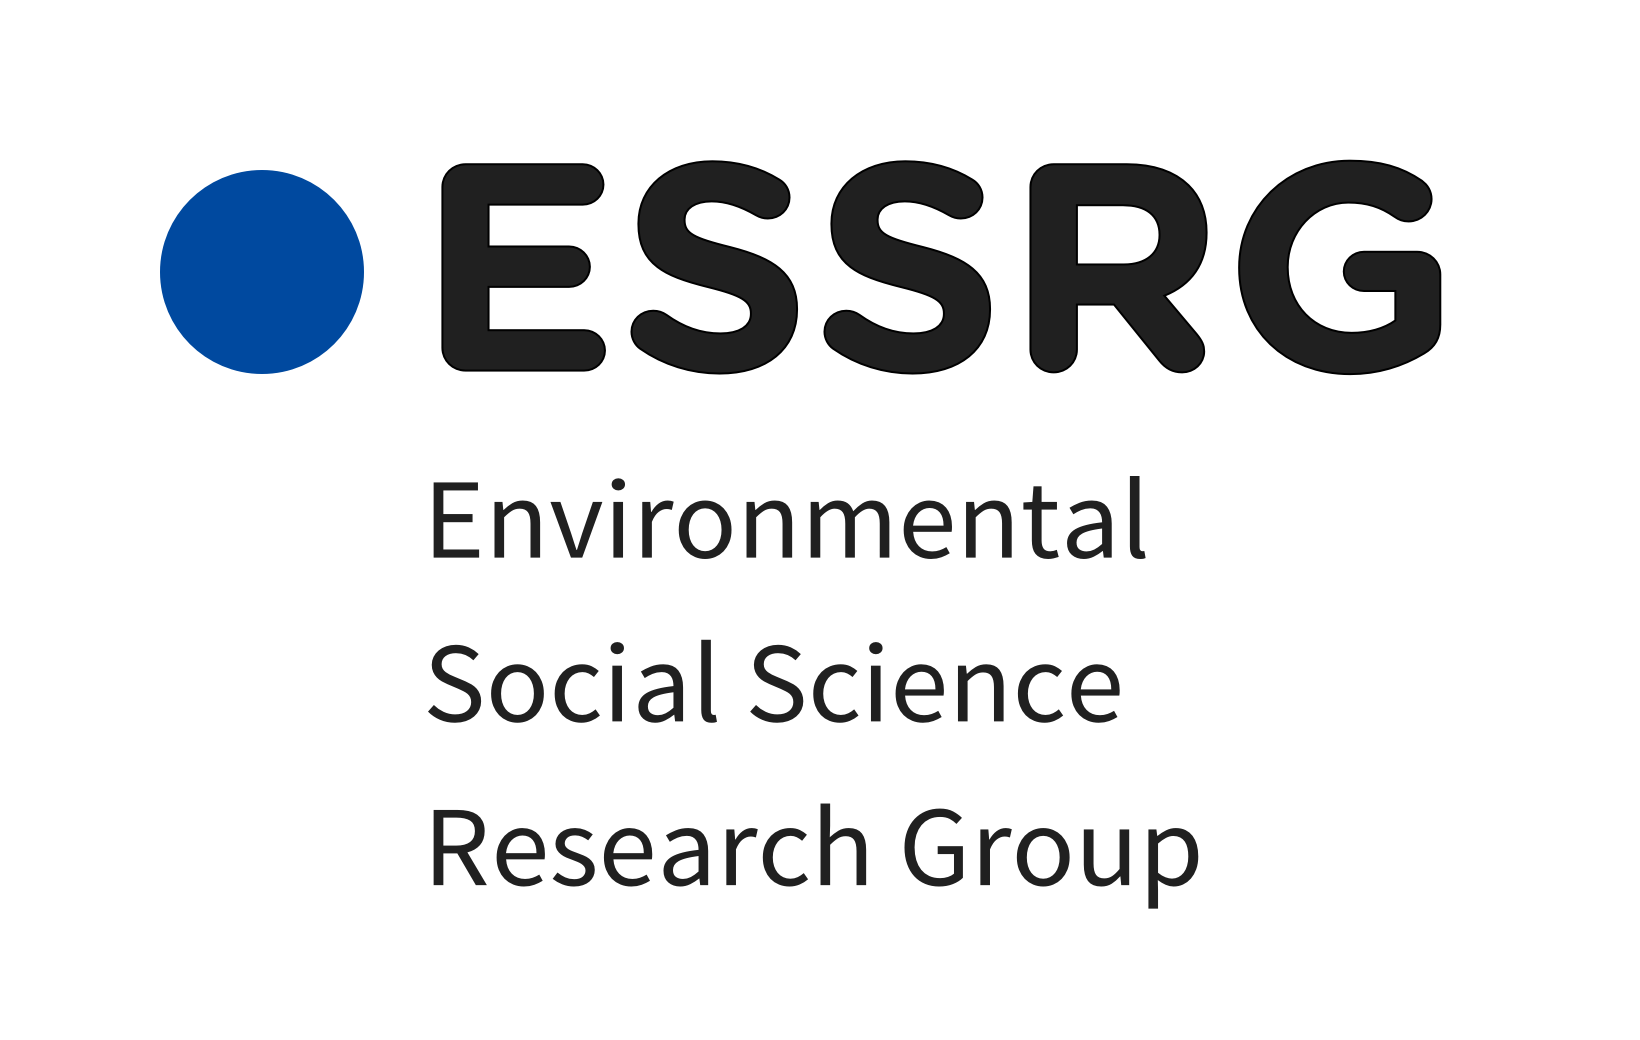 ESSRG (Environmental Social Science Research Group)